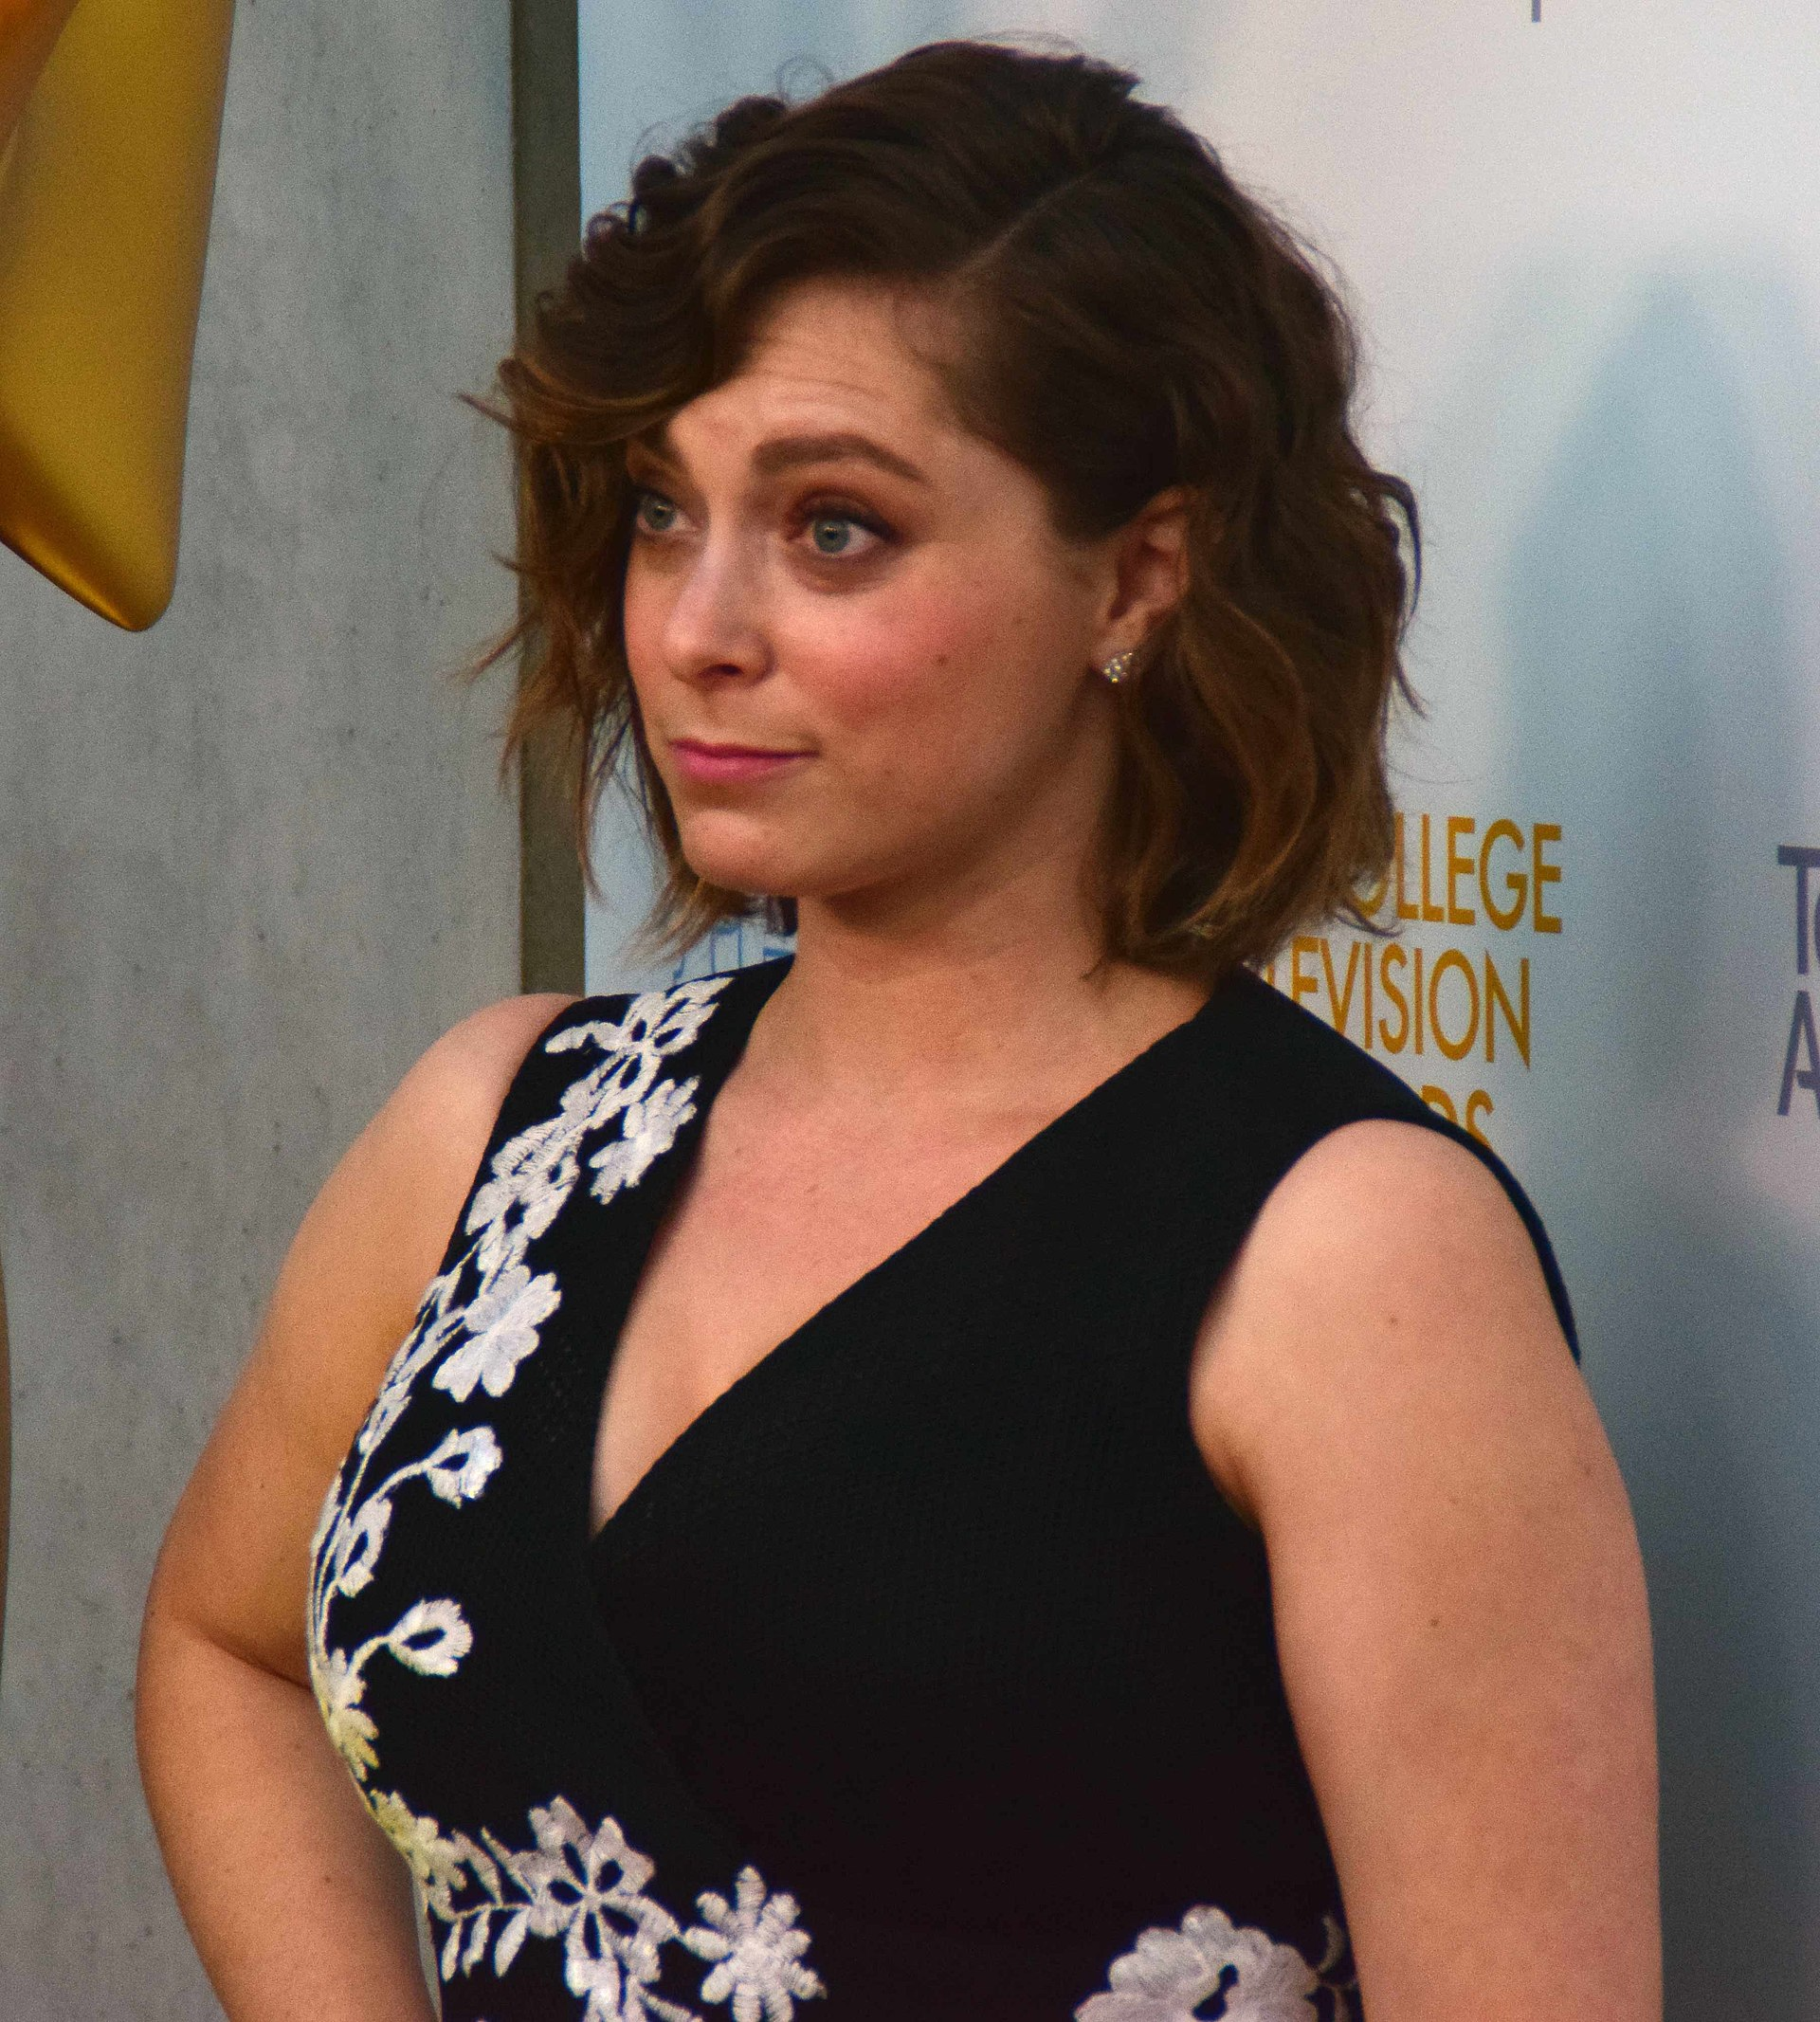 Rachel Bloom nudes (74 pictures), photo Porno, Snapchat, lingerie 2015